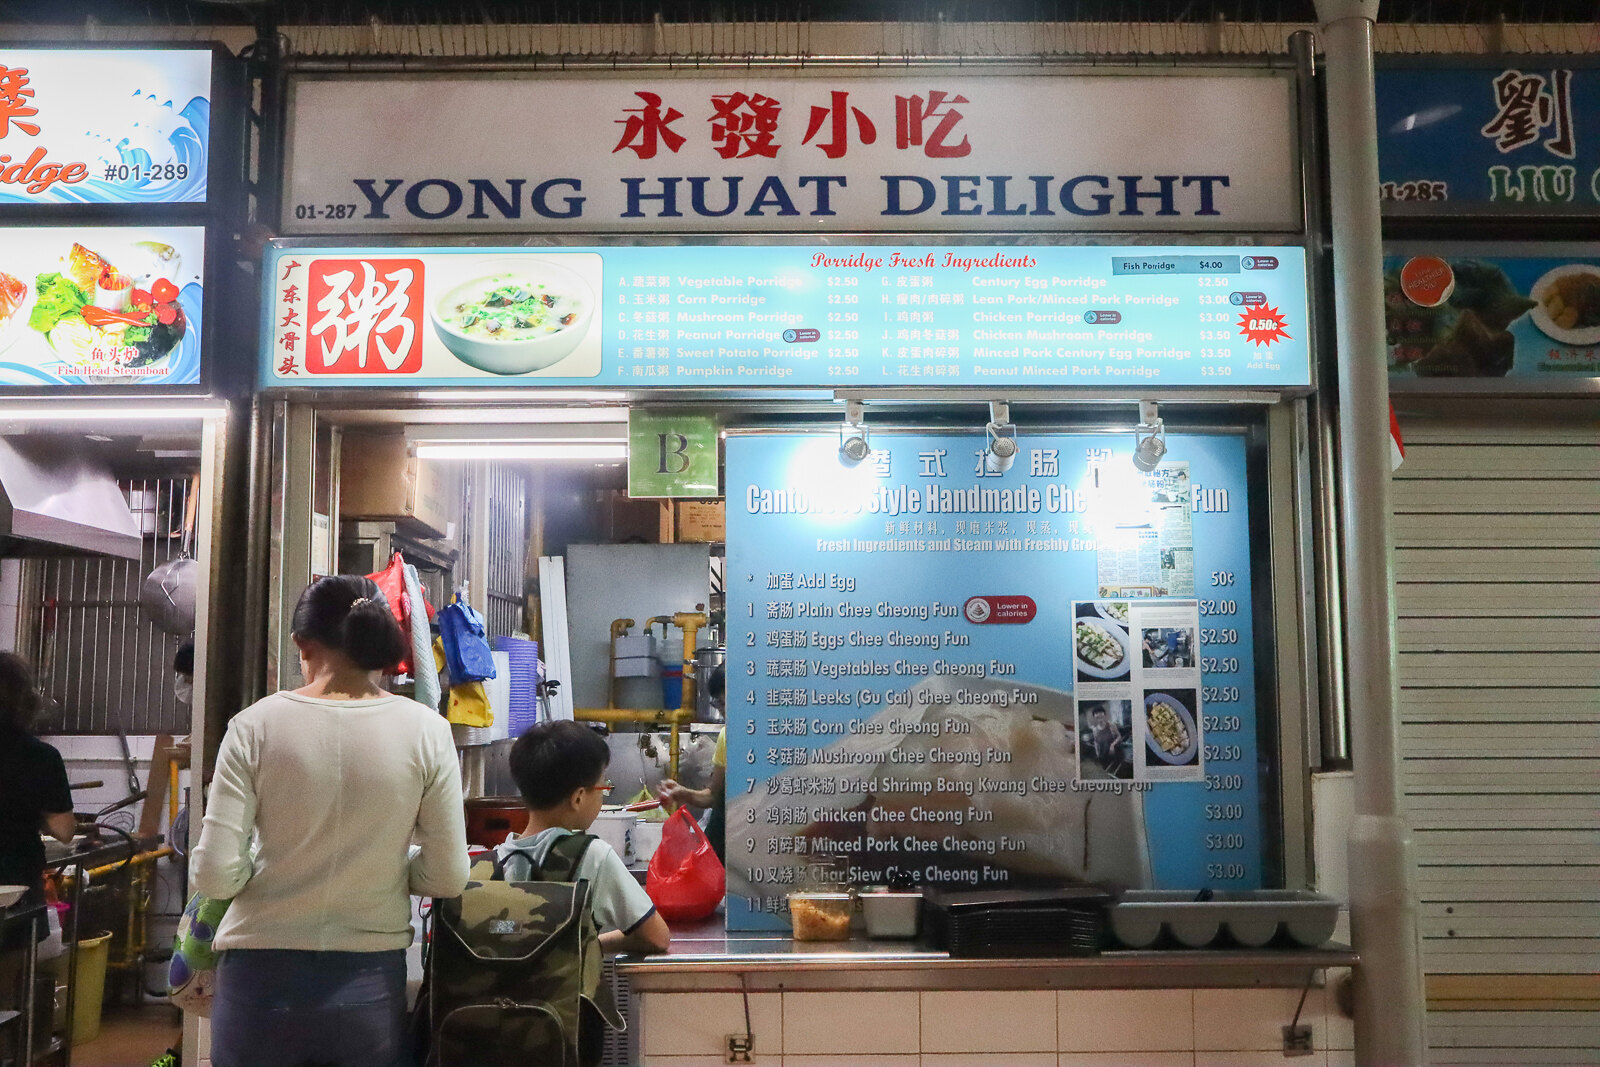 yong huat delight storefront